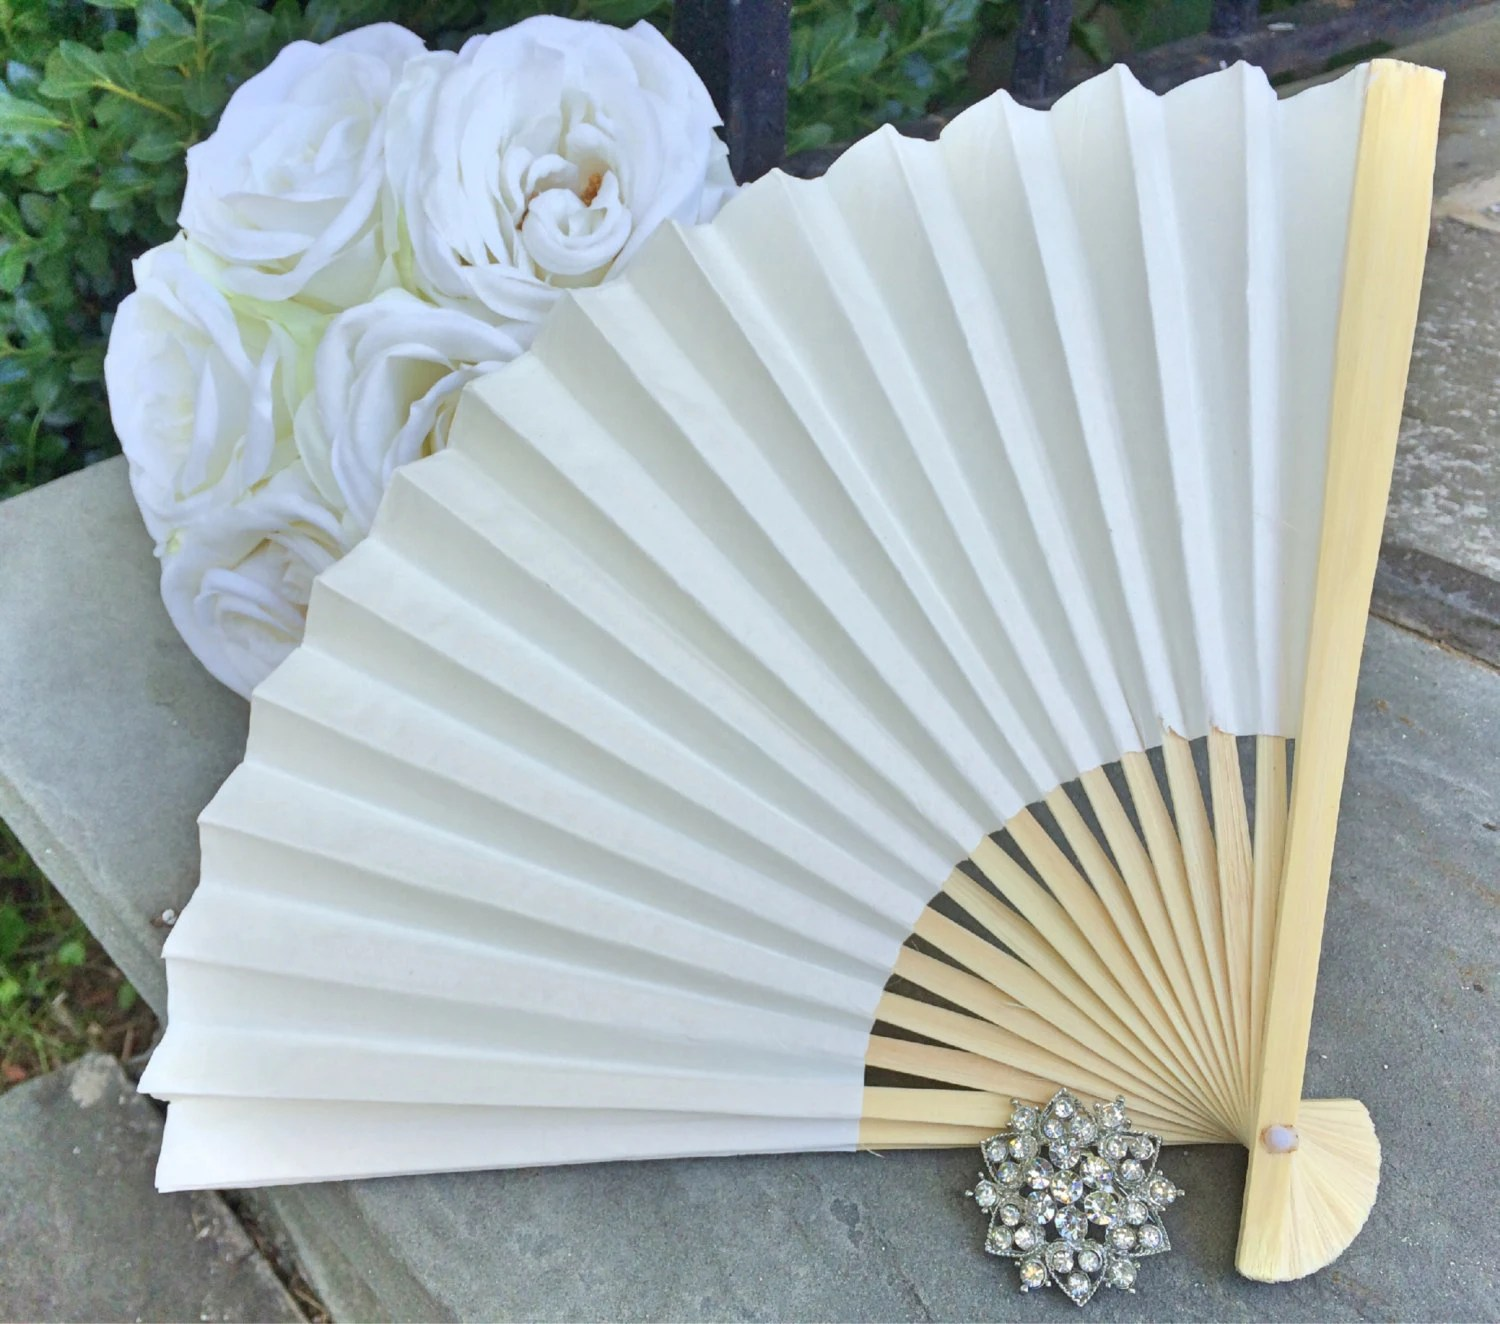 Fächer Selber Basteln Ivory Wedding Paper Fans For Wedding Pictures Ivory Hand